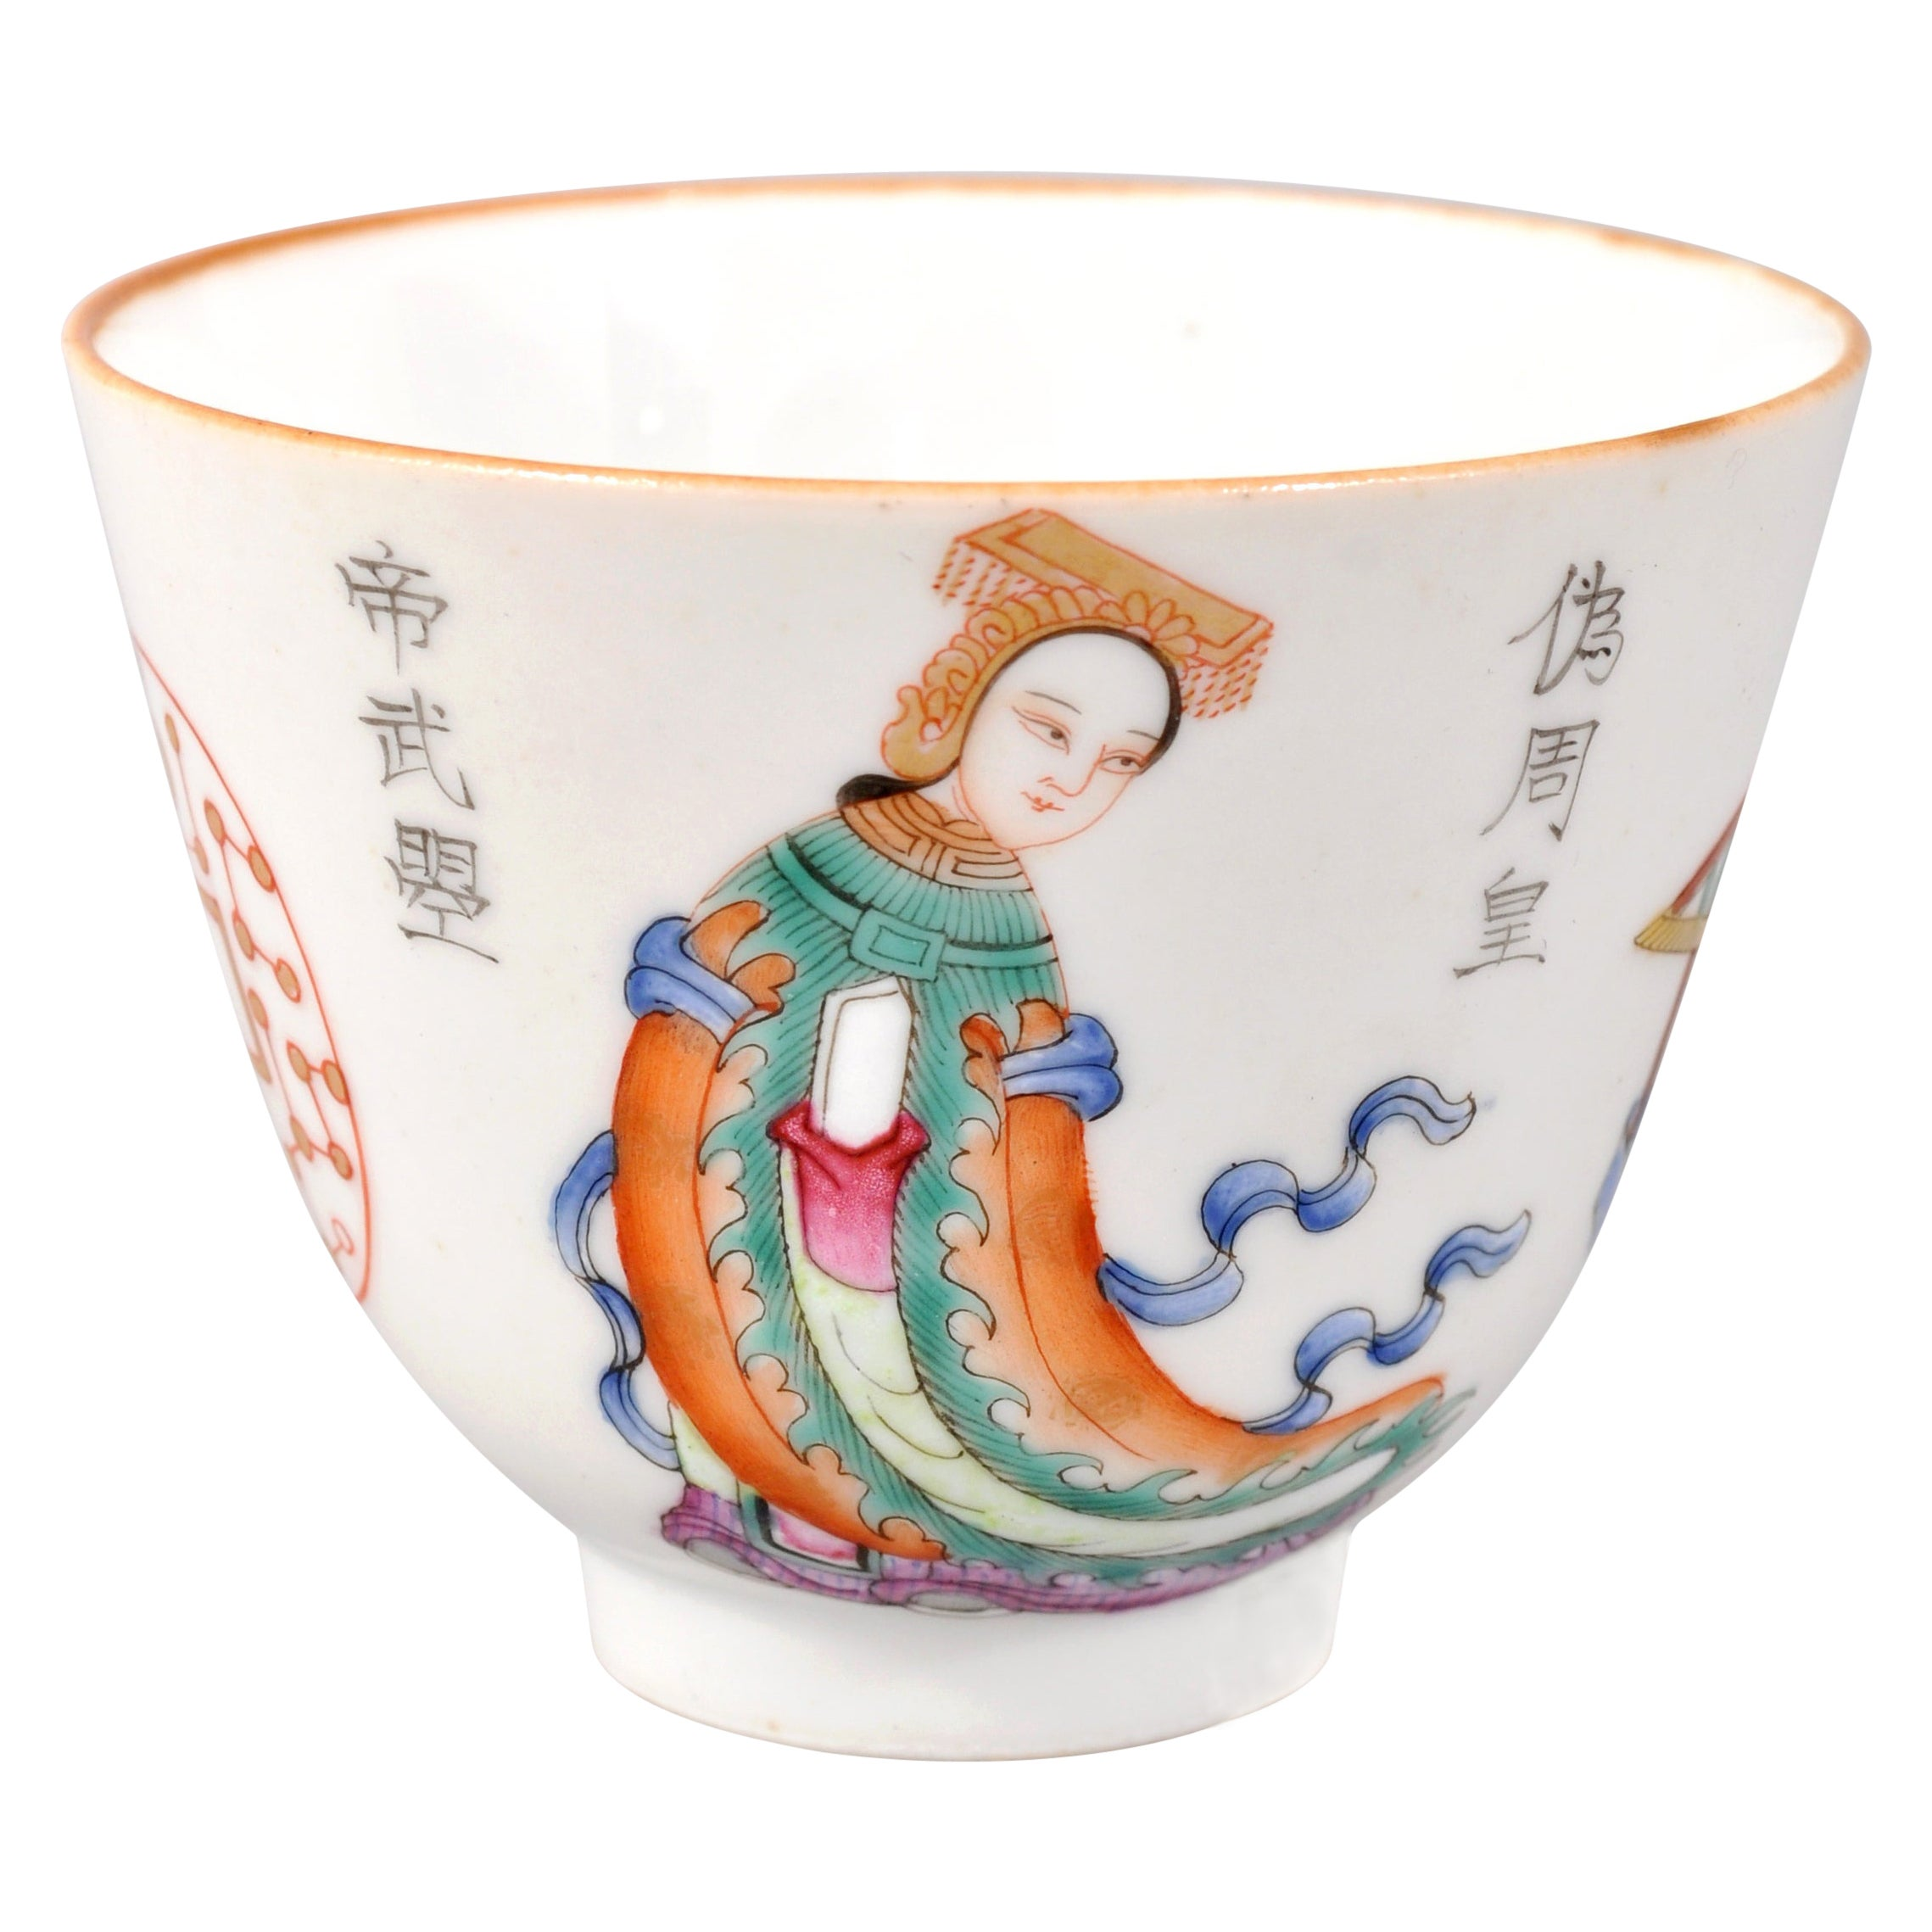 Antique Chinese Qing Dynasty Daoguang Mark Famille Rose Porcelain Bowl Cup, 1880